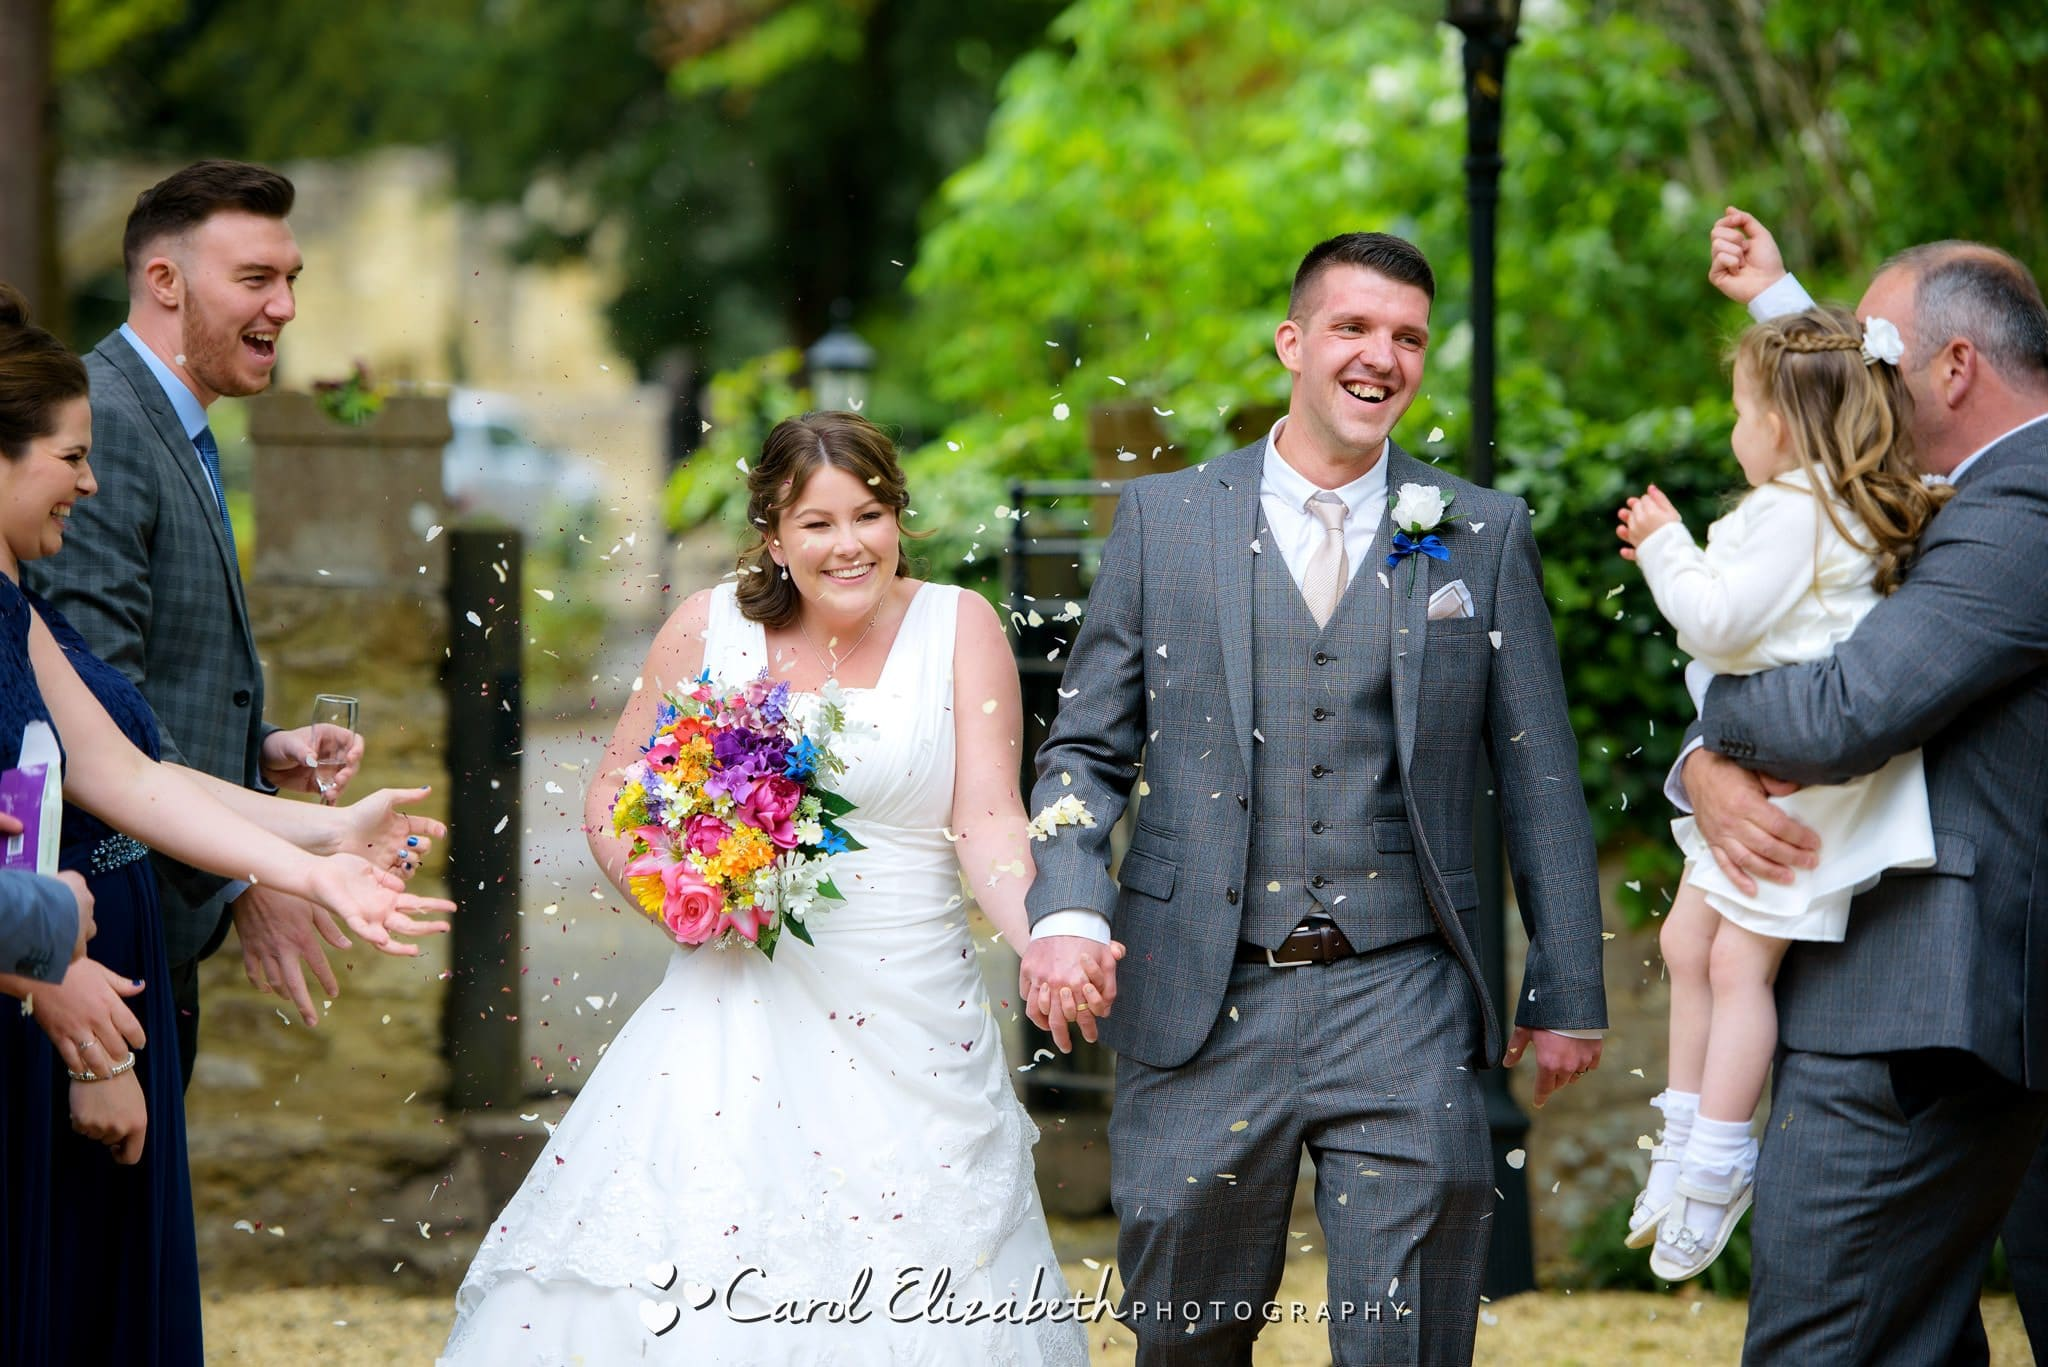 Reportage wedding photographer in Oxford and Abingdon